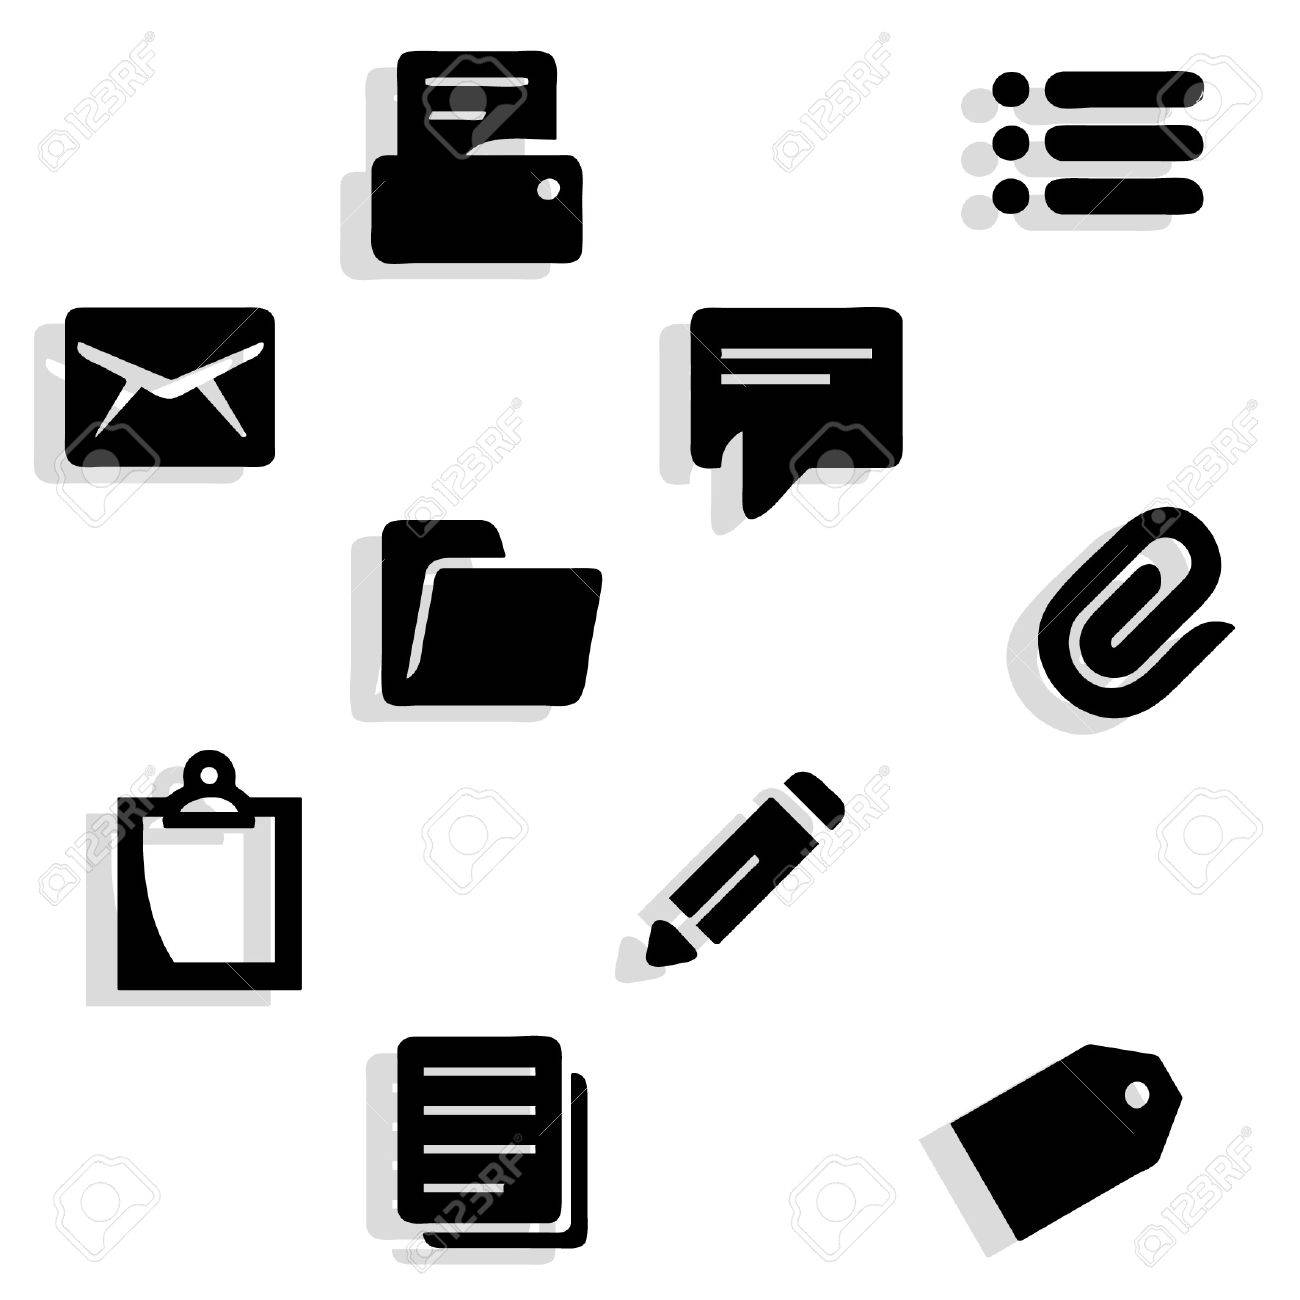 Working documents icons - 37545329